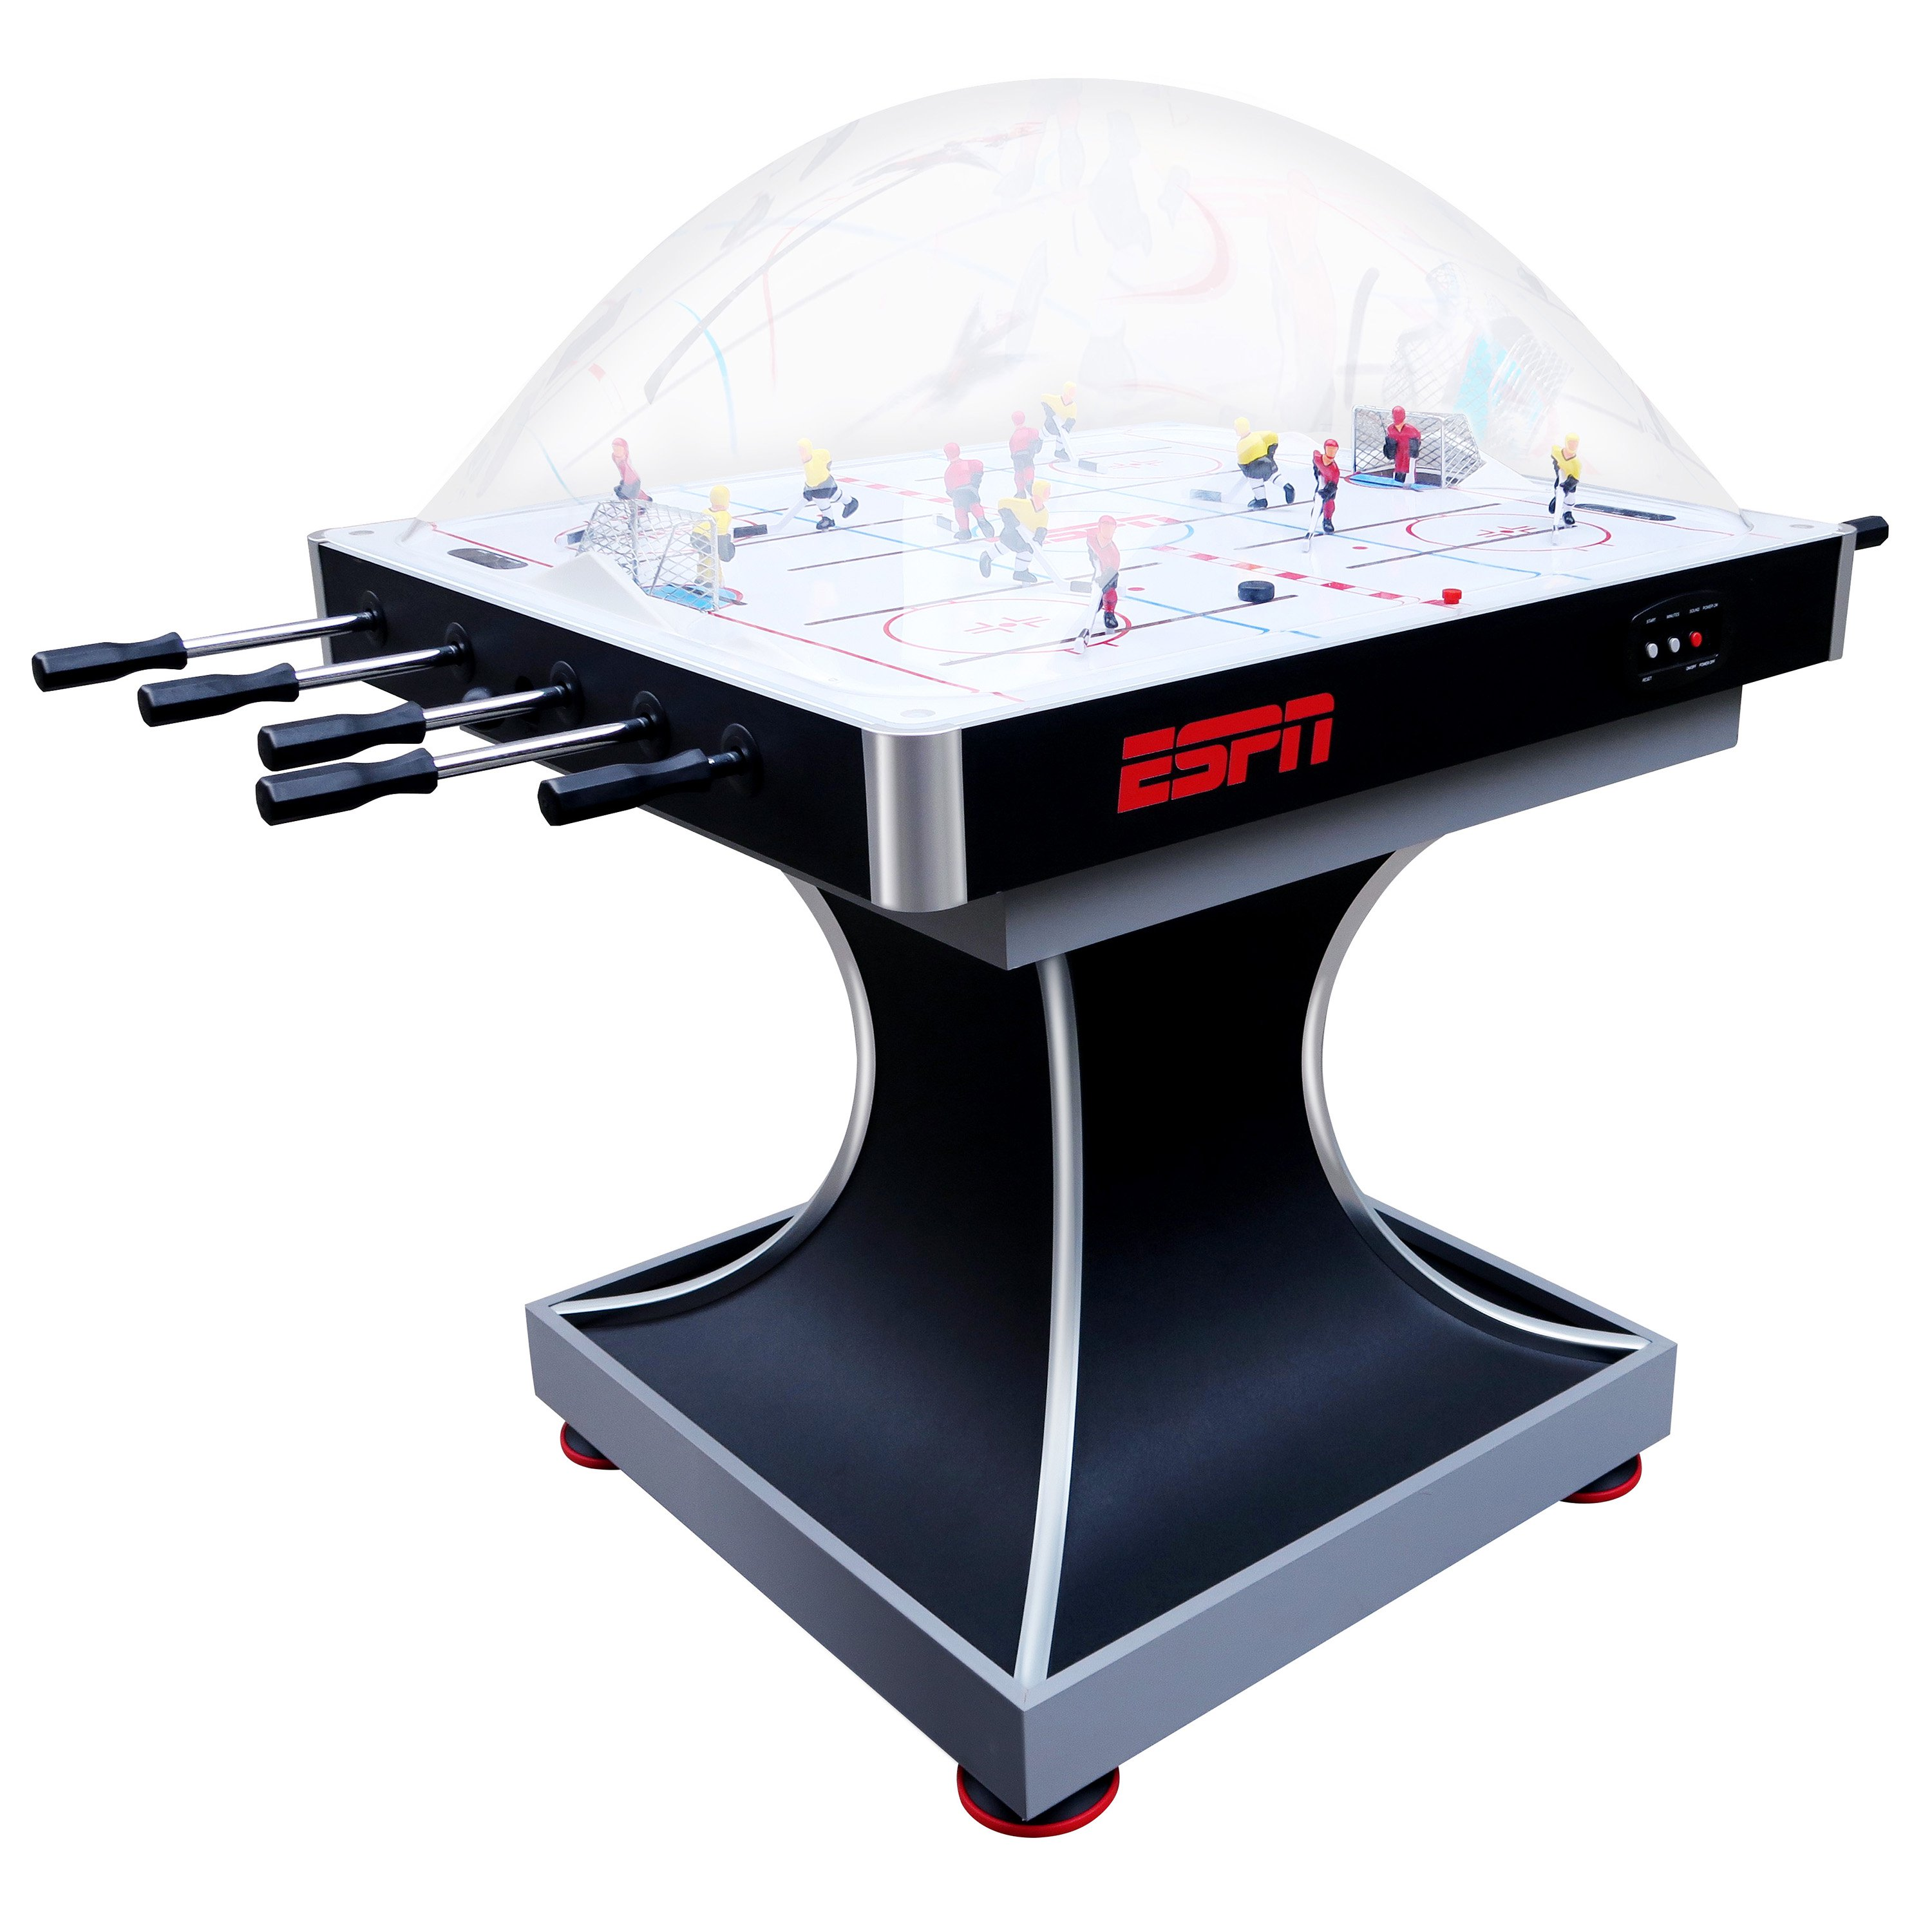 ESPN 2-Player Premium Dome Bubble Hockey Table with LED Scoring System by MD Sports